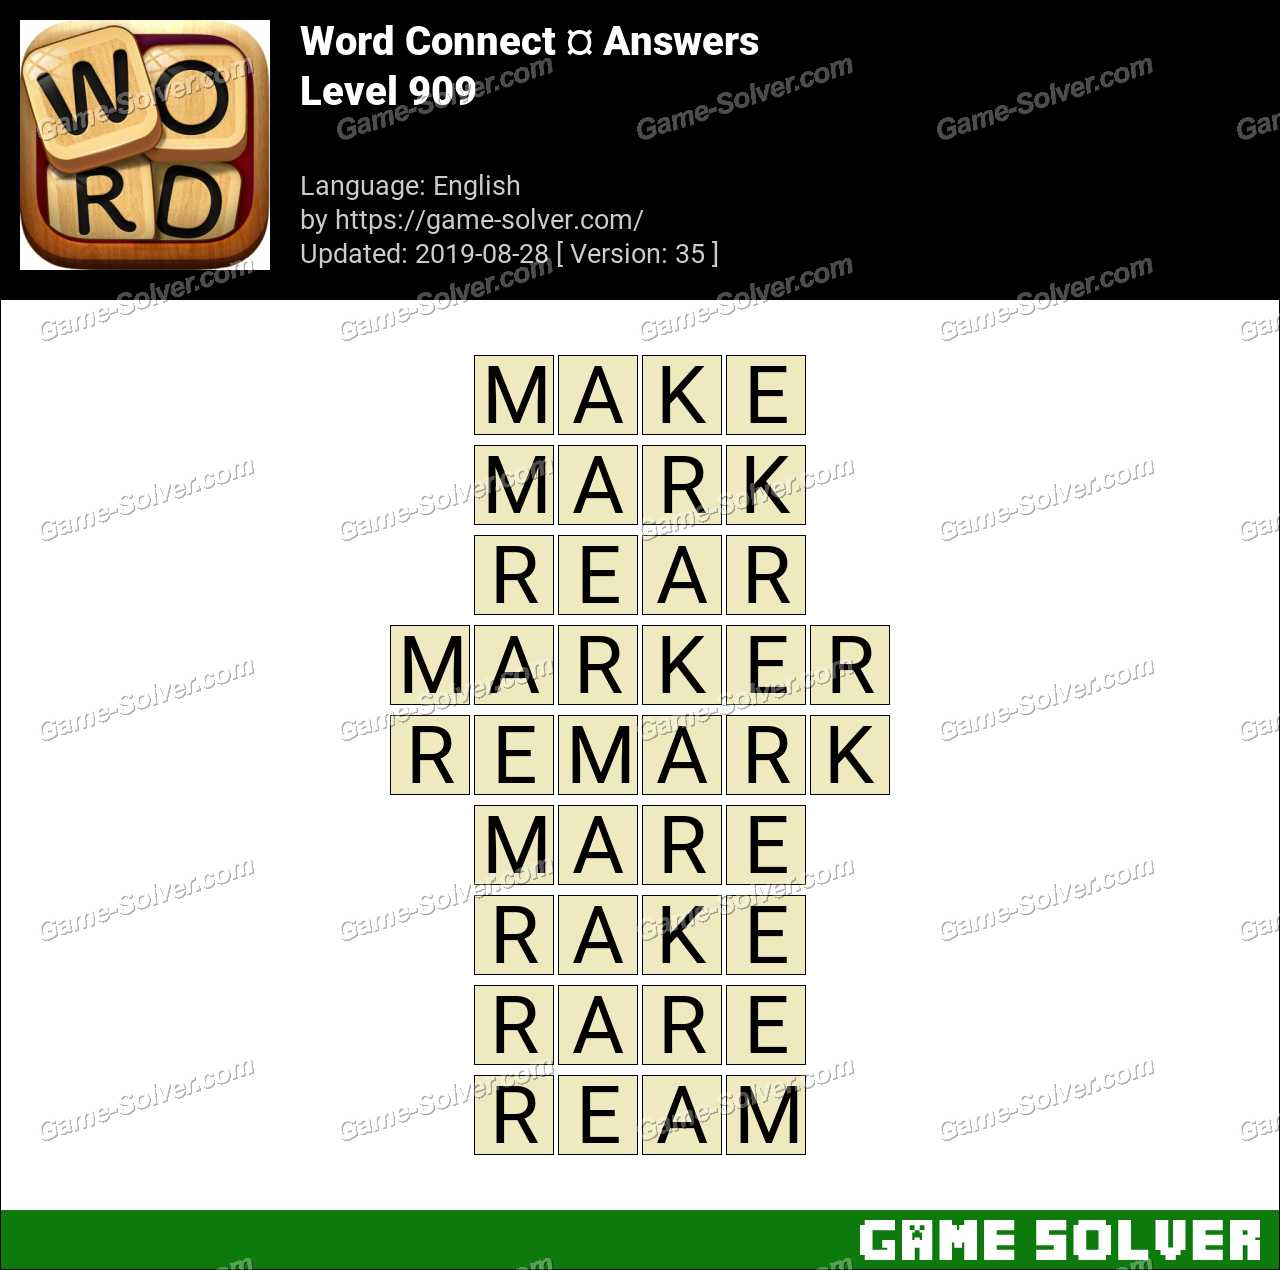 Word Connect Level 909 Answers